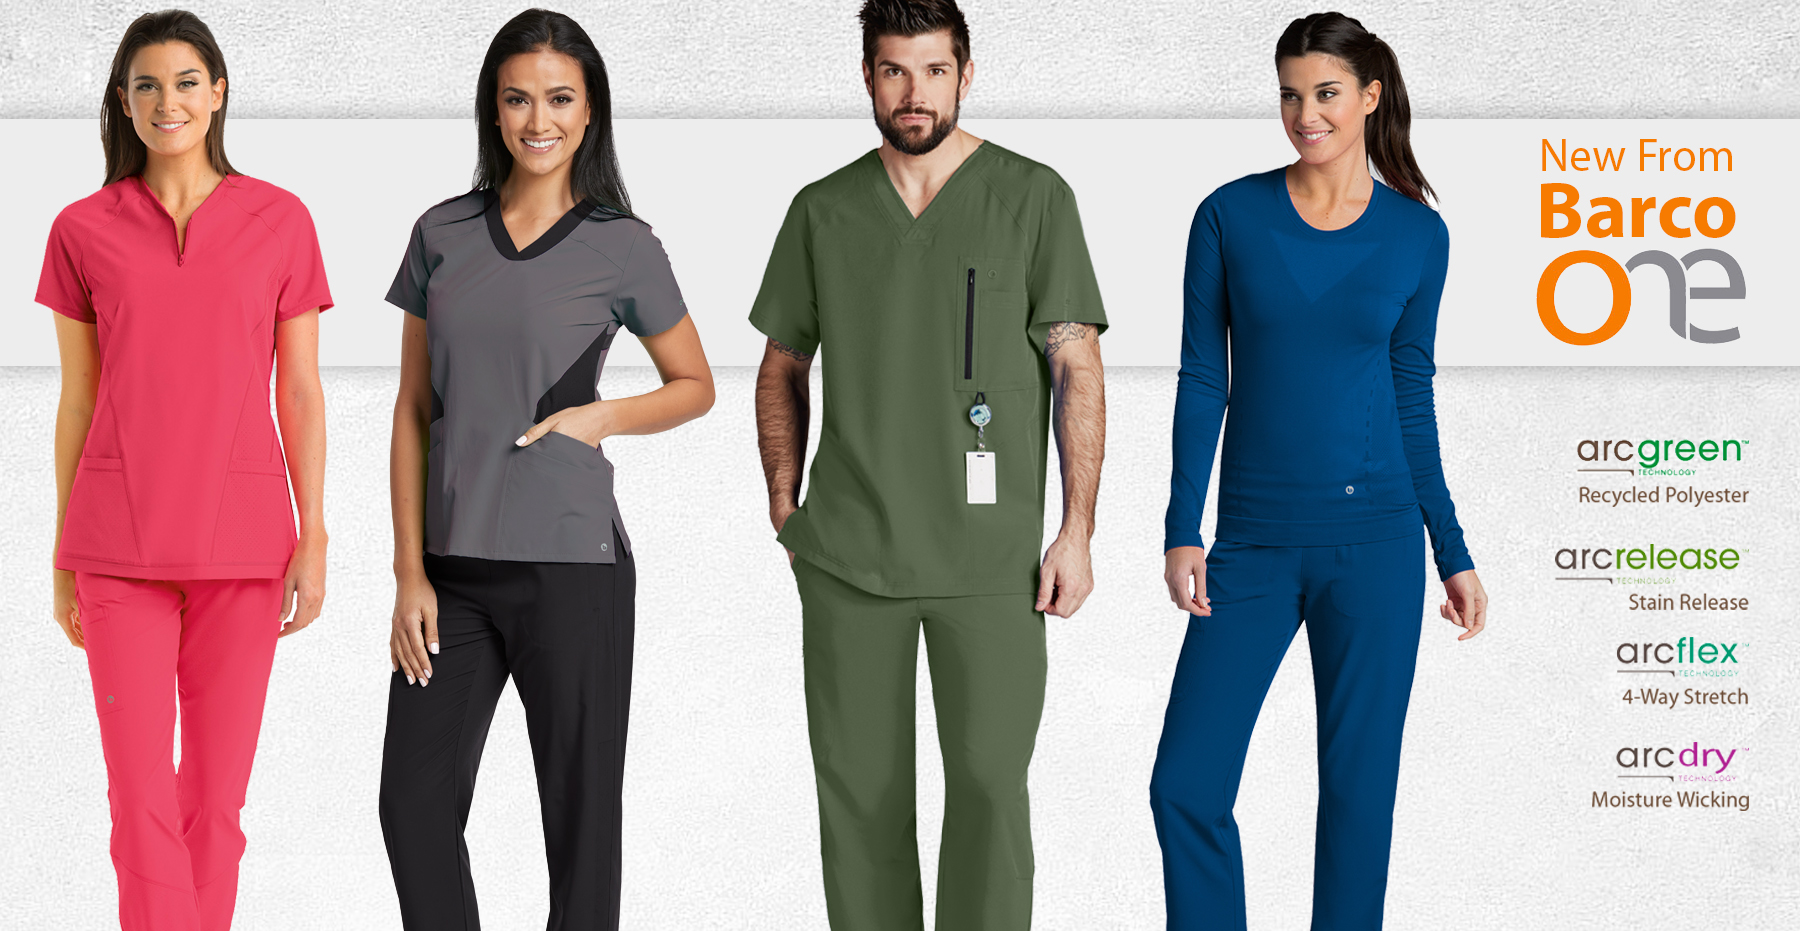 d84318dfd6 New Barco ONE Nursing Scrubs   Medical Uniforms